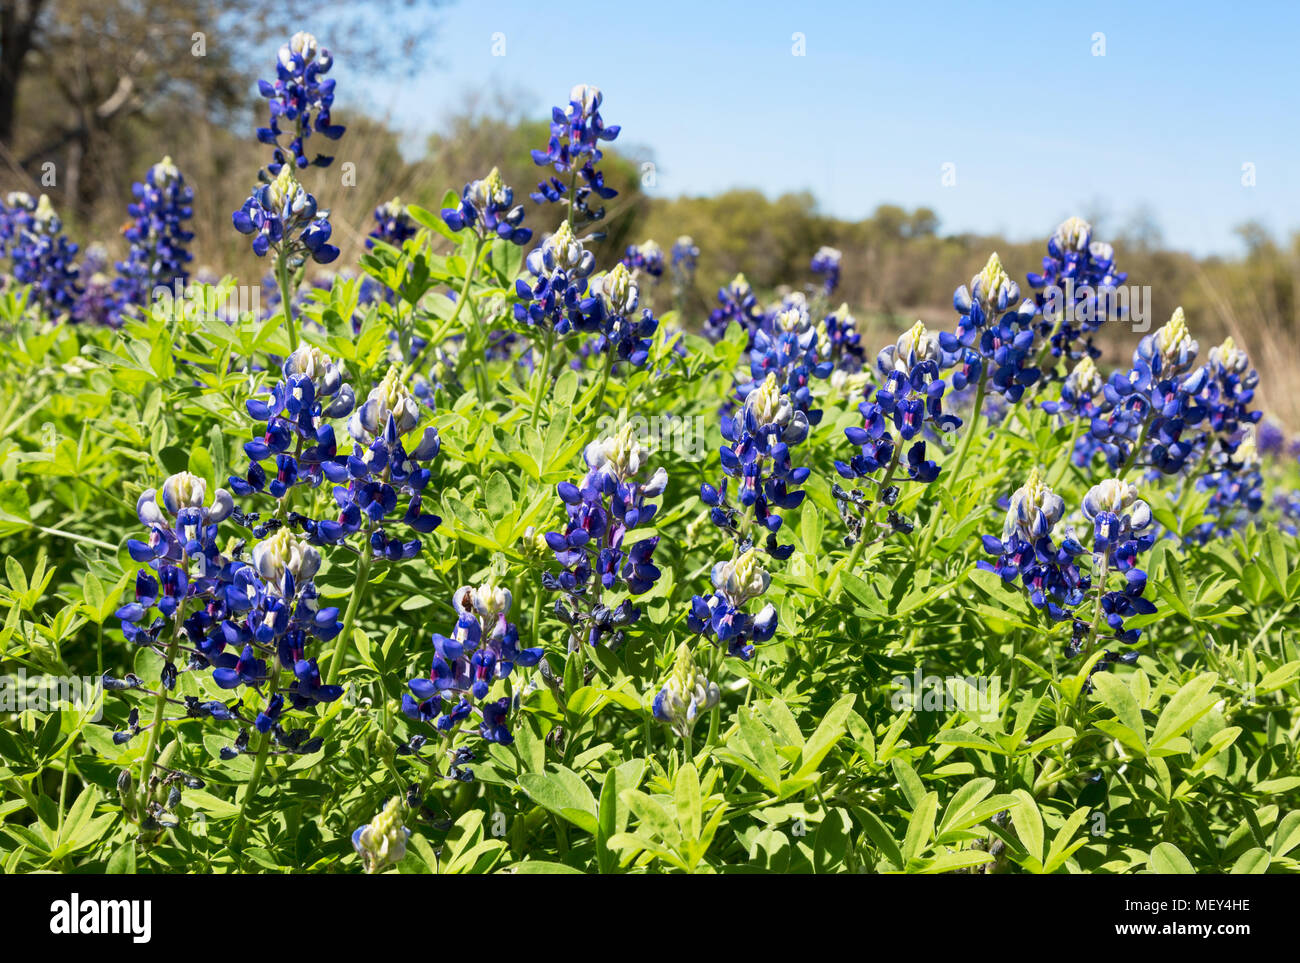 Bluebonnets Lupinus Texensis Flowers Growing Wild The